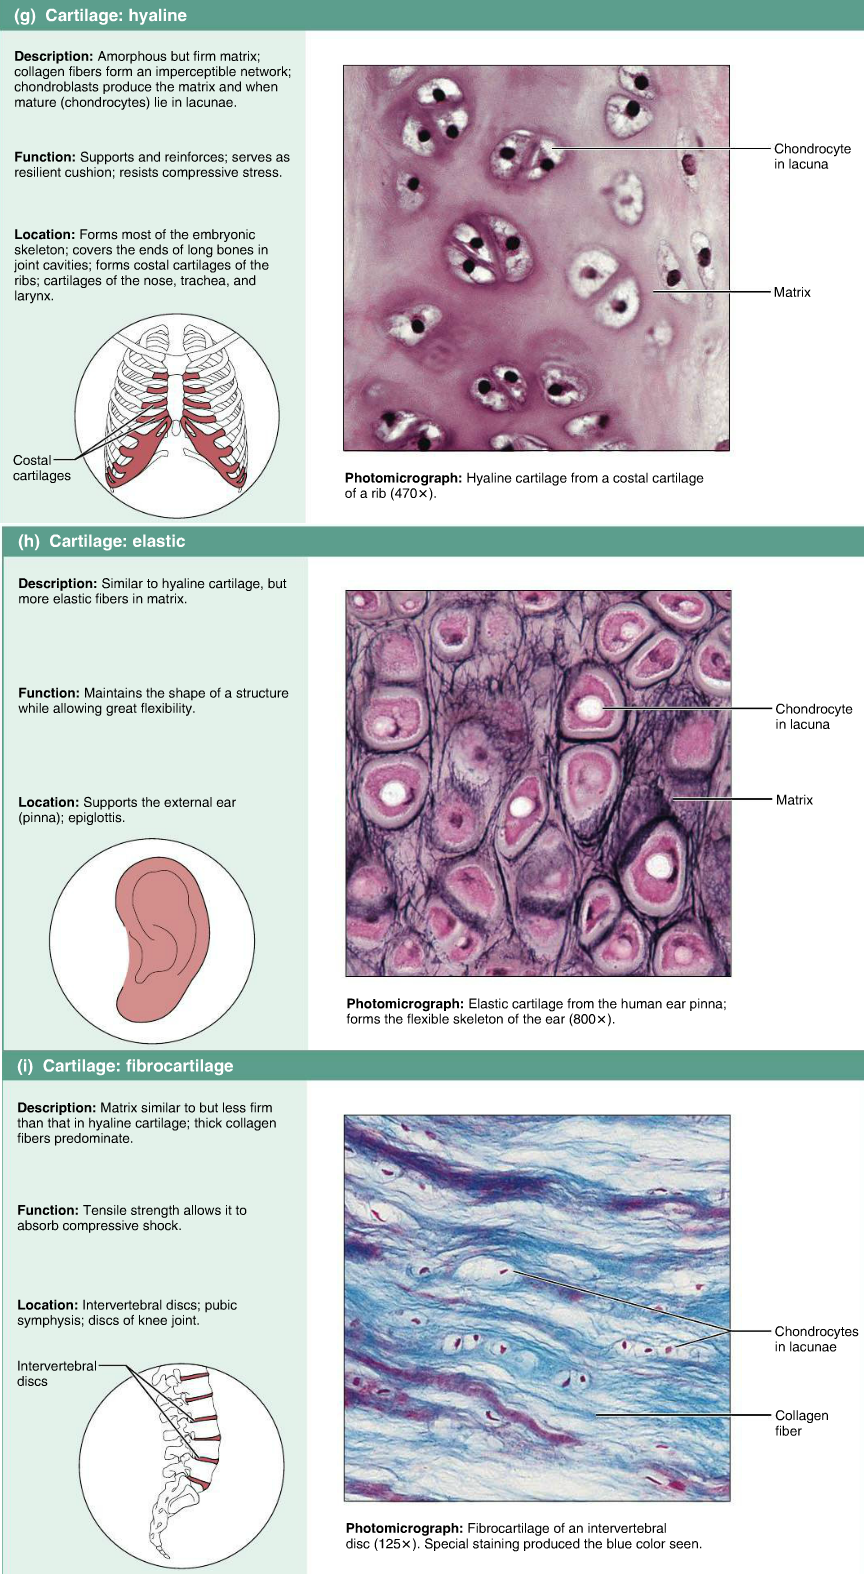 Connective Tissues Cartilage Hyaline Elastic Fibrocartilage Anatomy And Physiology Human Anatomy And